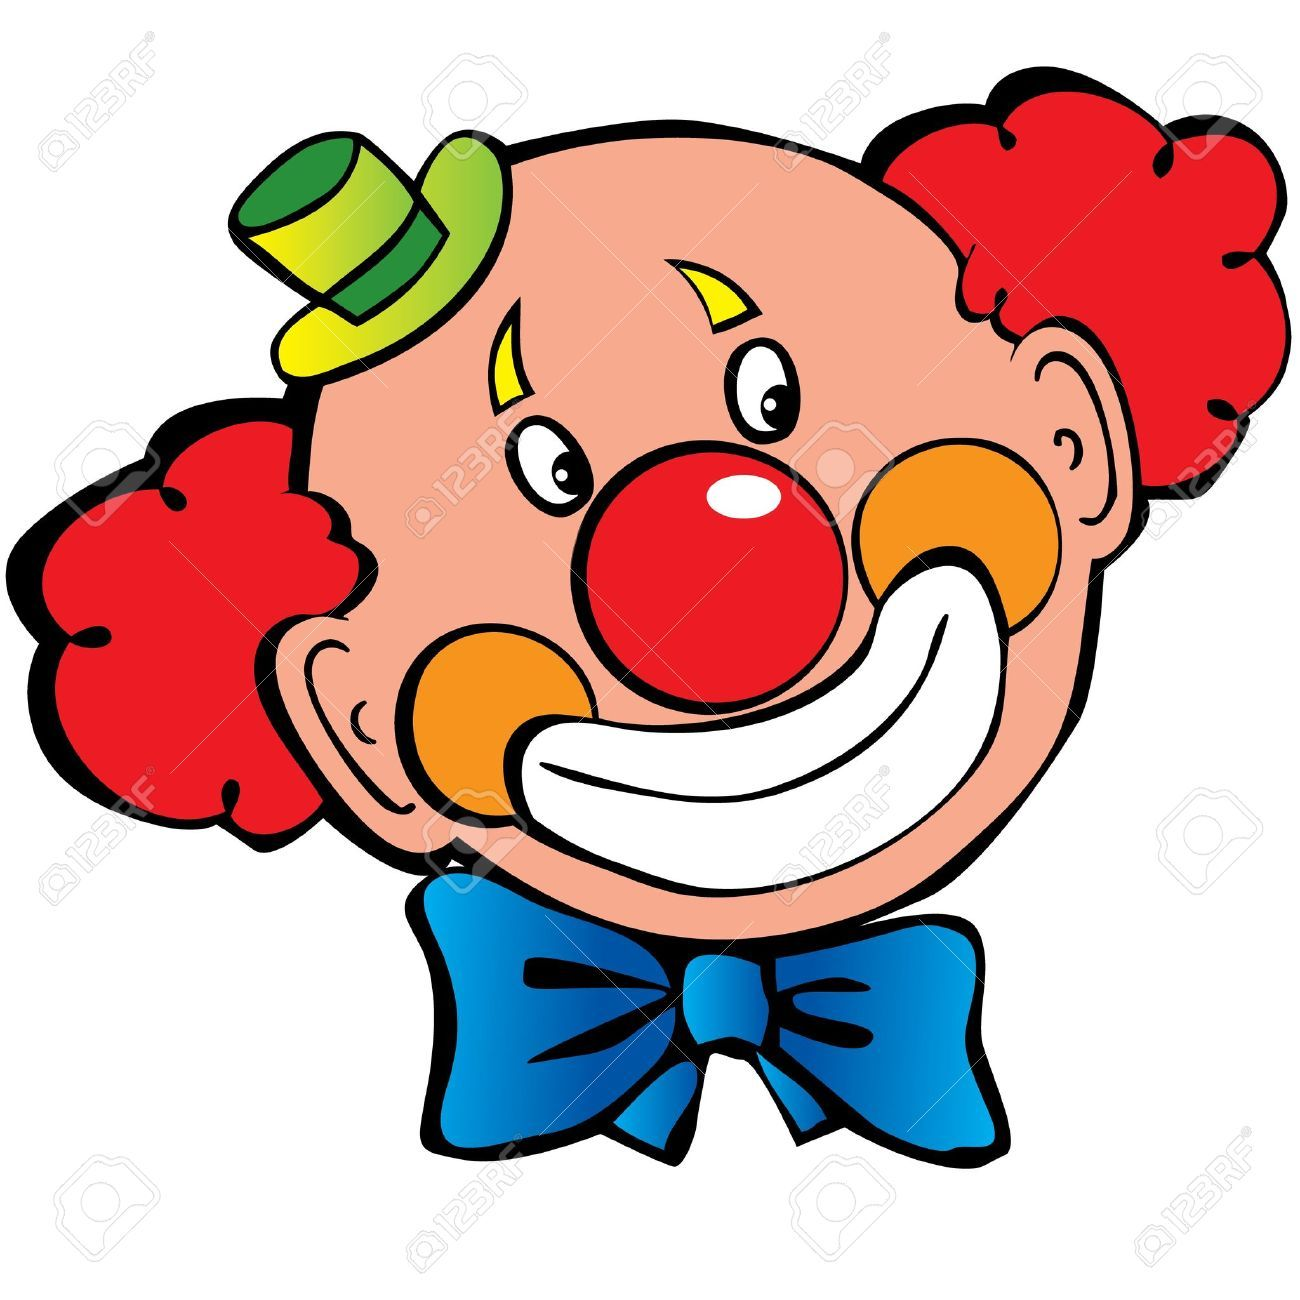 image of clown face clipart 9 free clown clipart 1 page of rh pinterest com clip art crowns and tiaras clip art clown fish